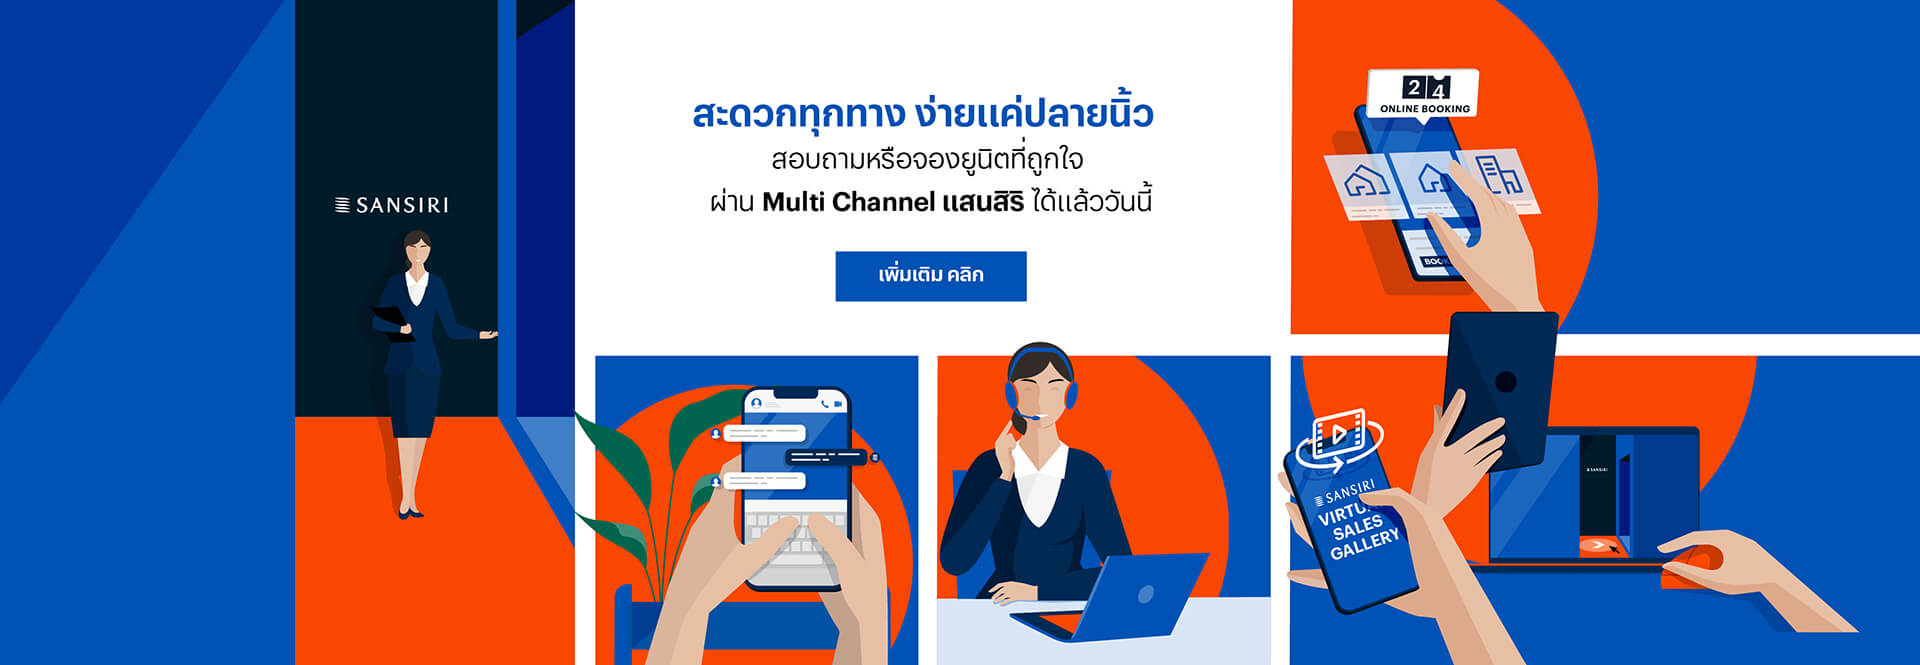 Sansiri Open Everyday Homepage